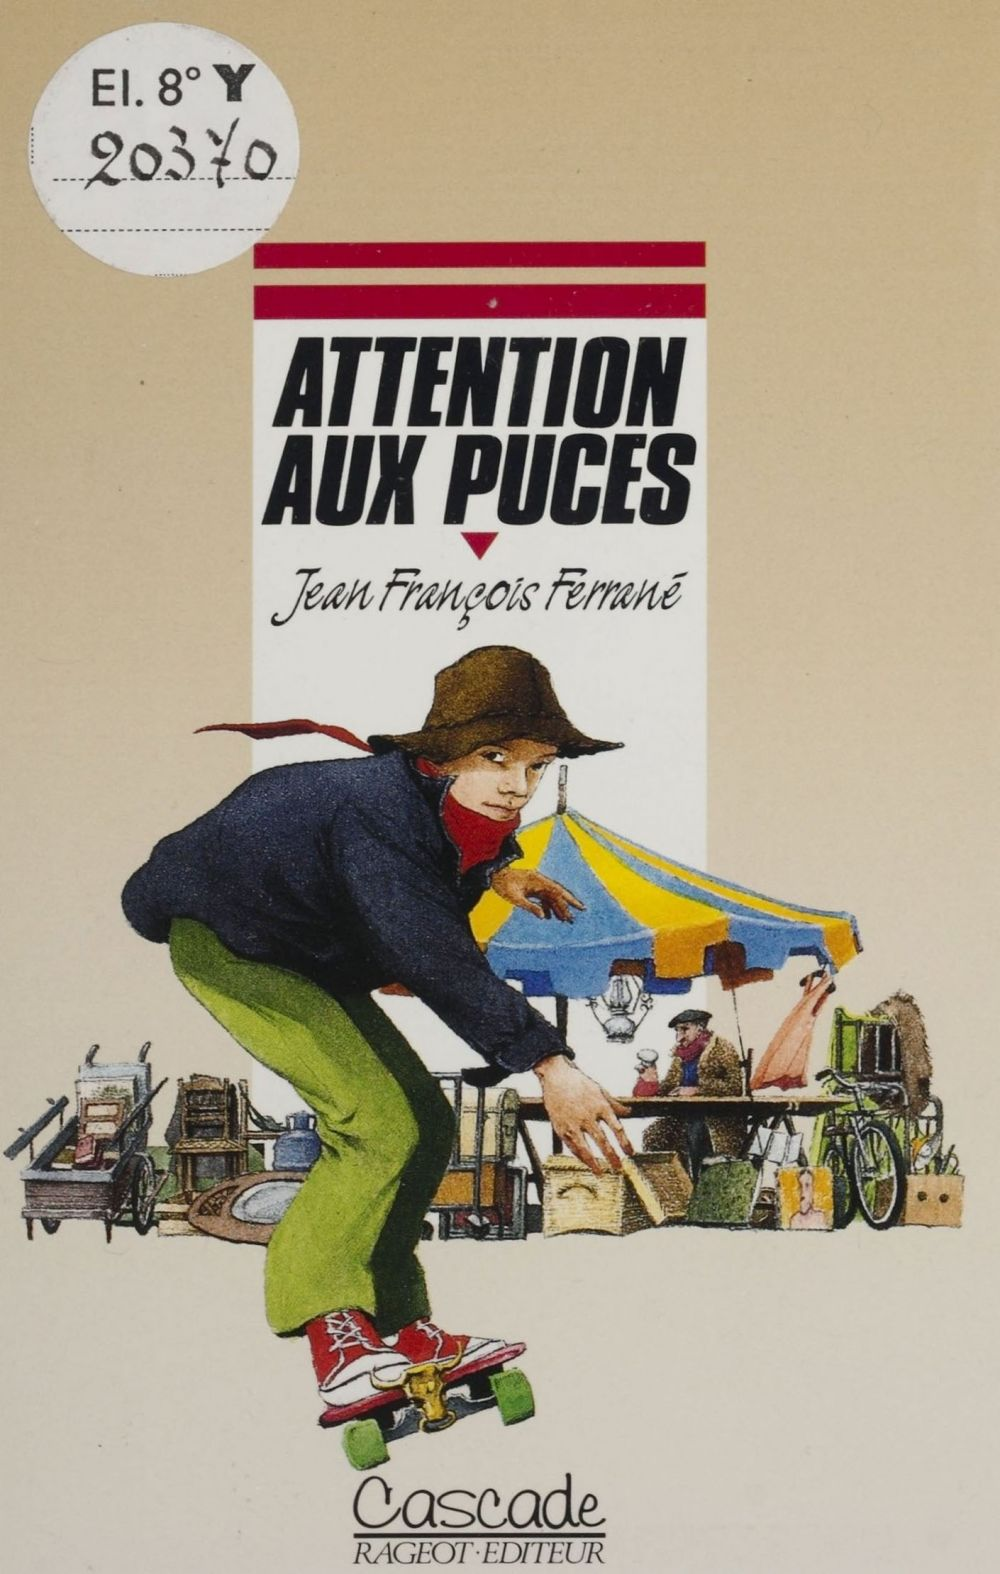 Attention aux puces